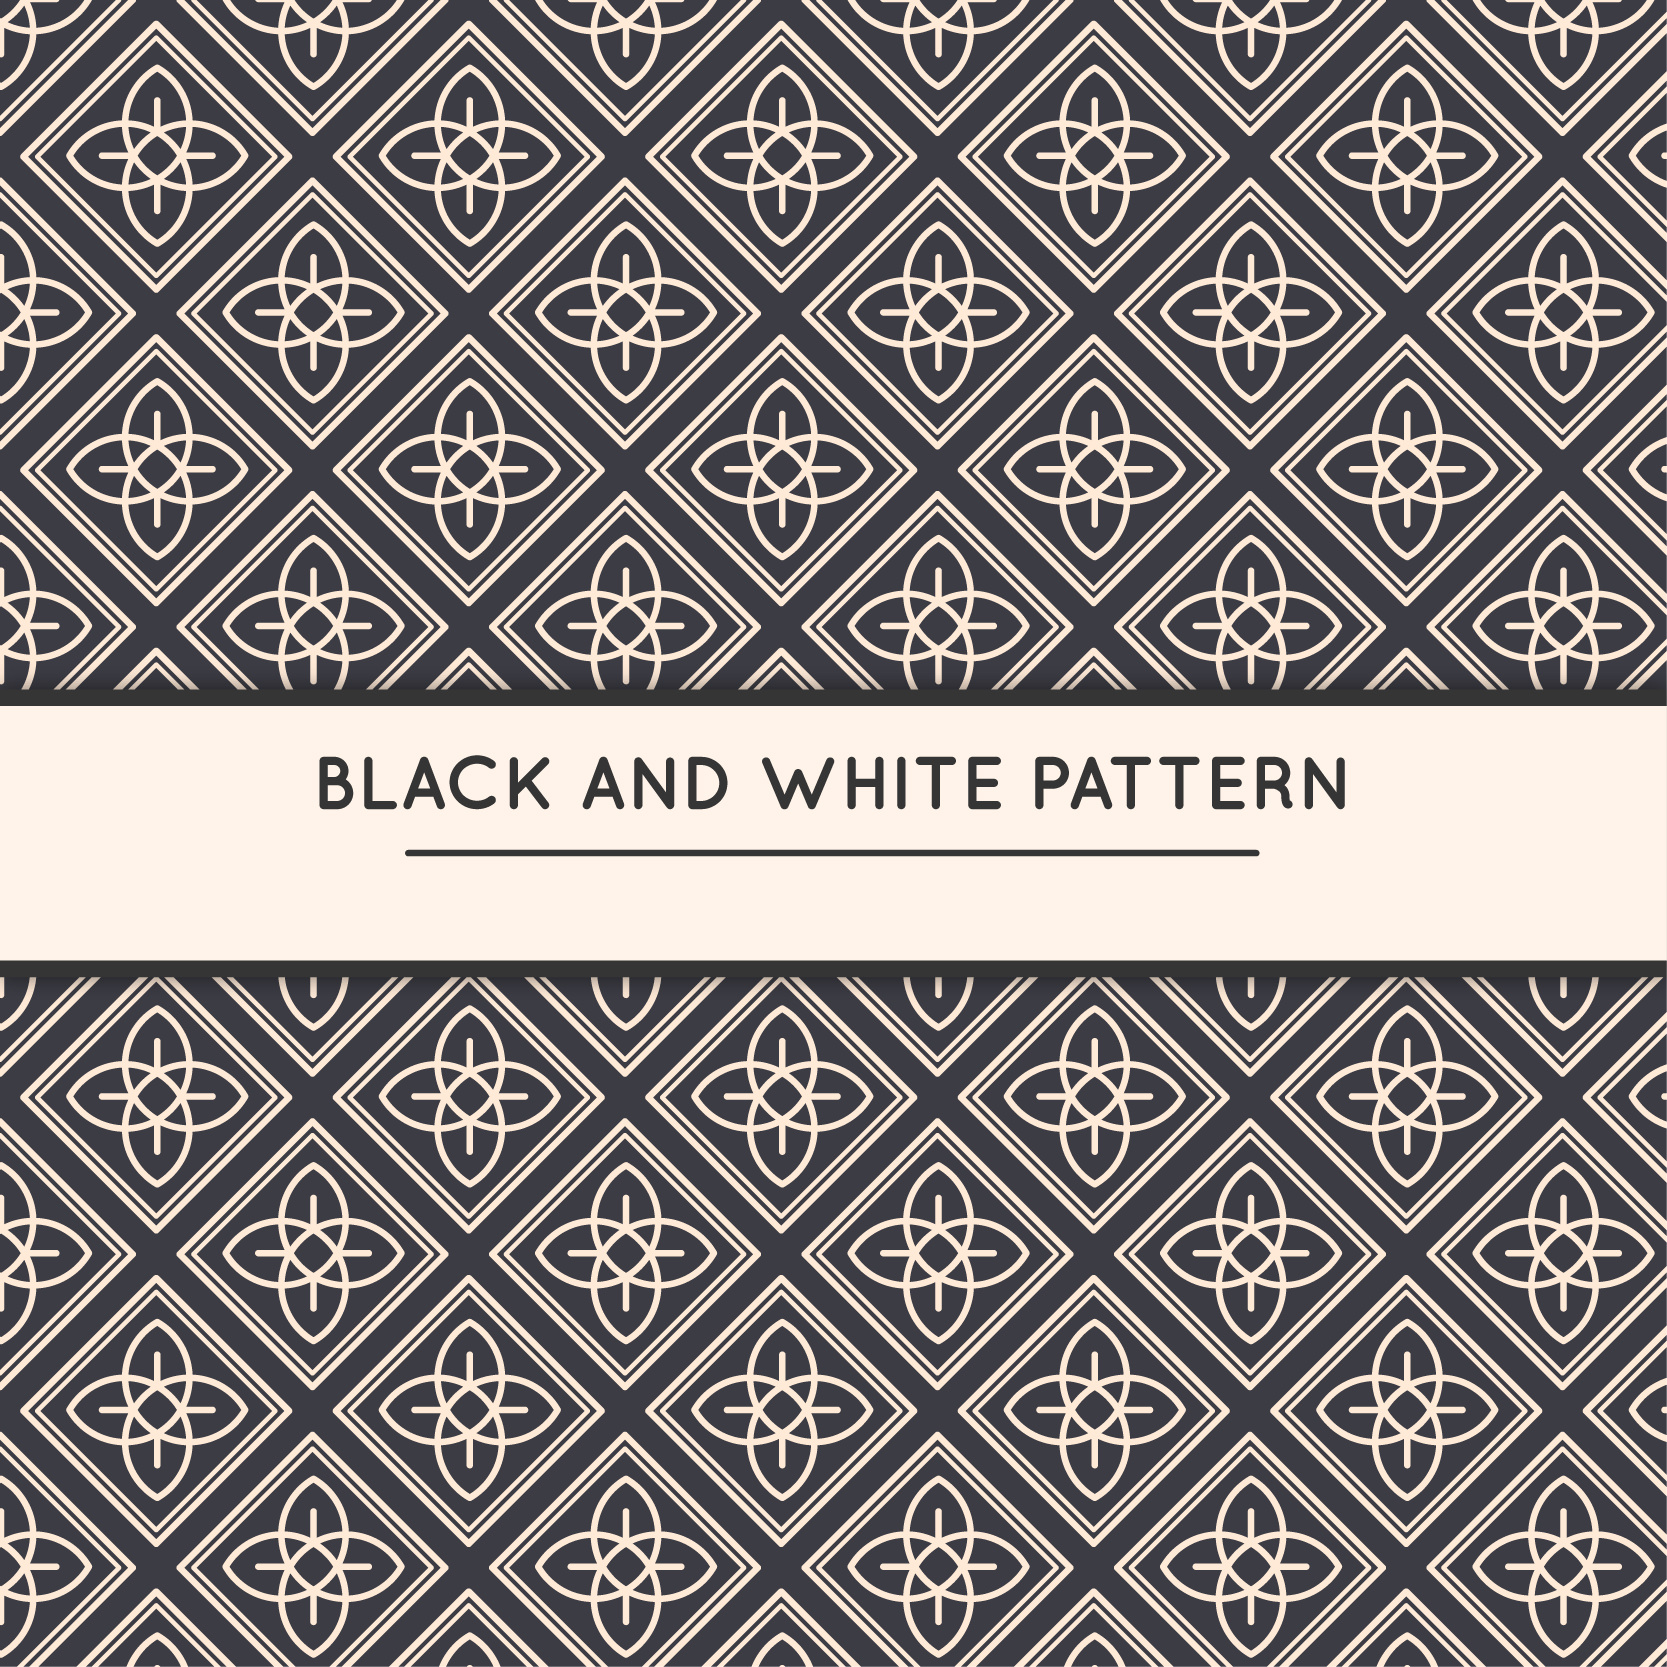 Black and white Free Vector Seamless Patterns